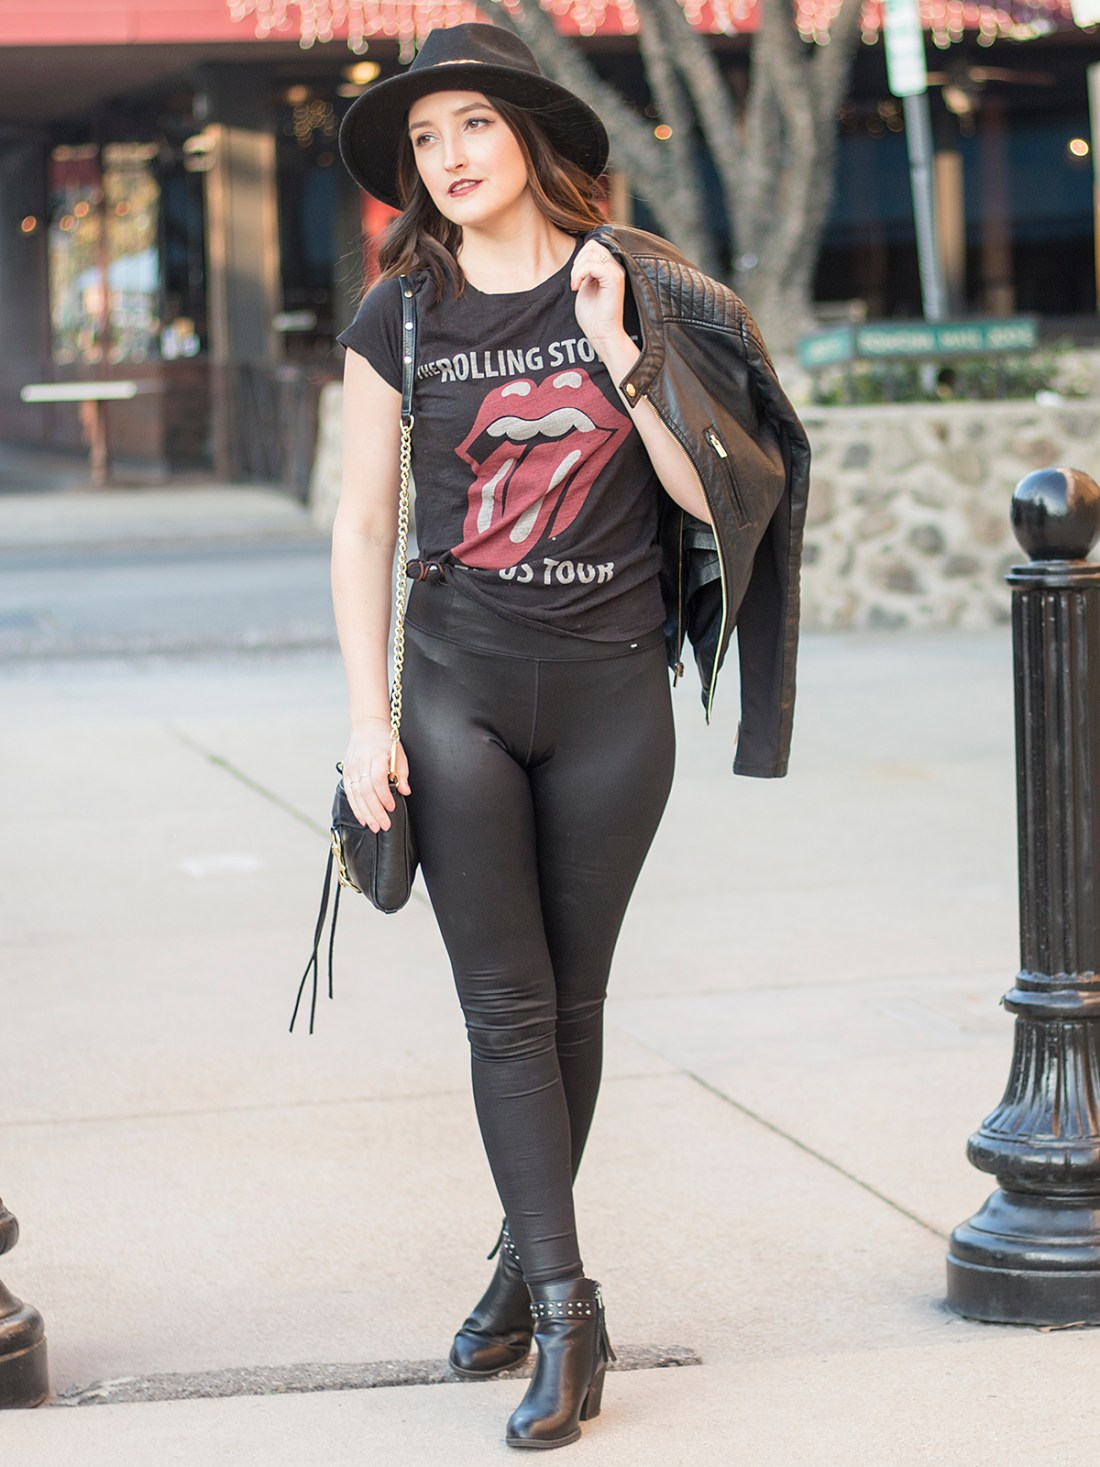 Rolling Stones Graphic Tee Outfit | A Good Hue